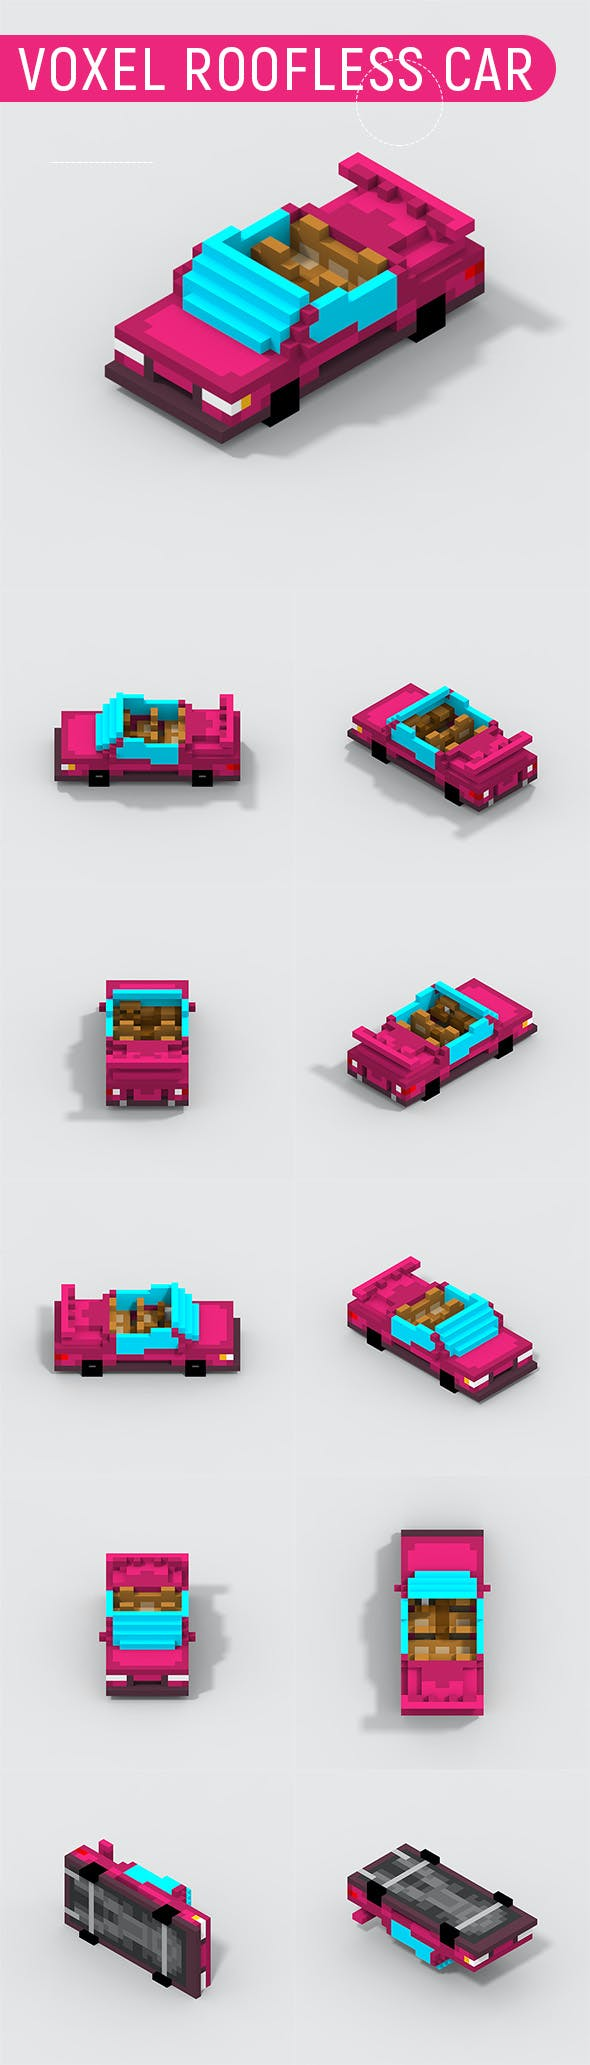 Voxel Roofless Car - 3DOcean Item for Sale